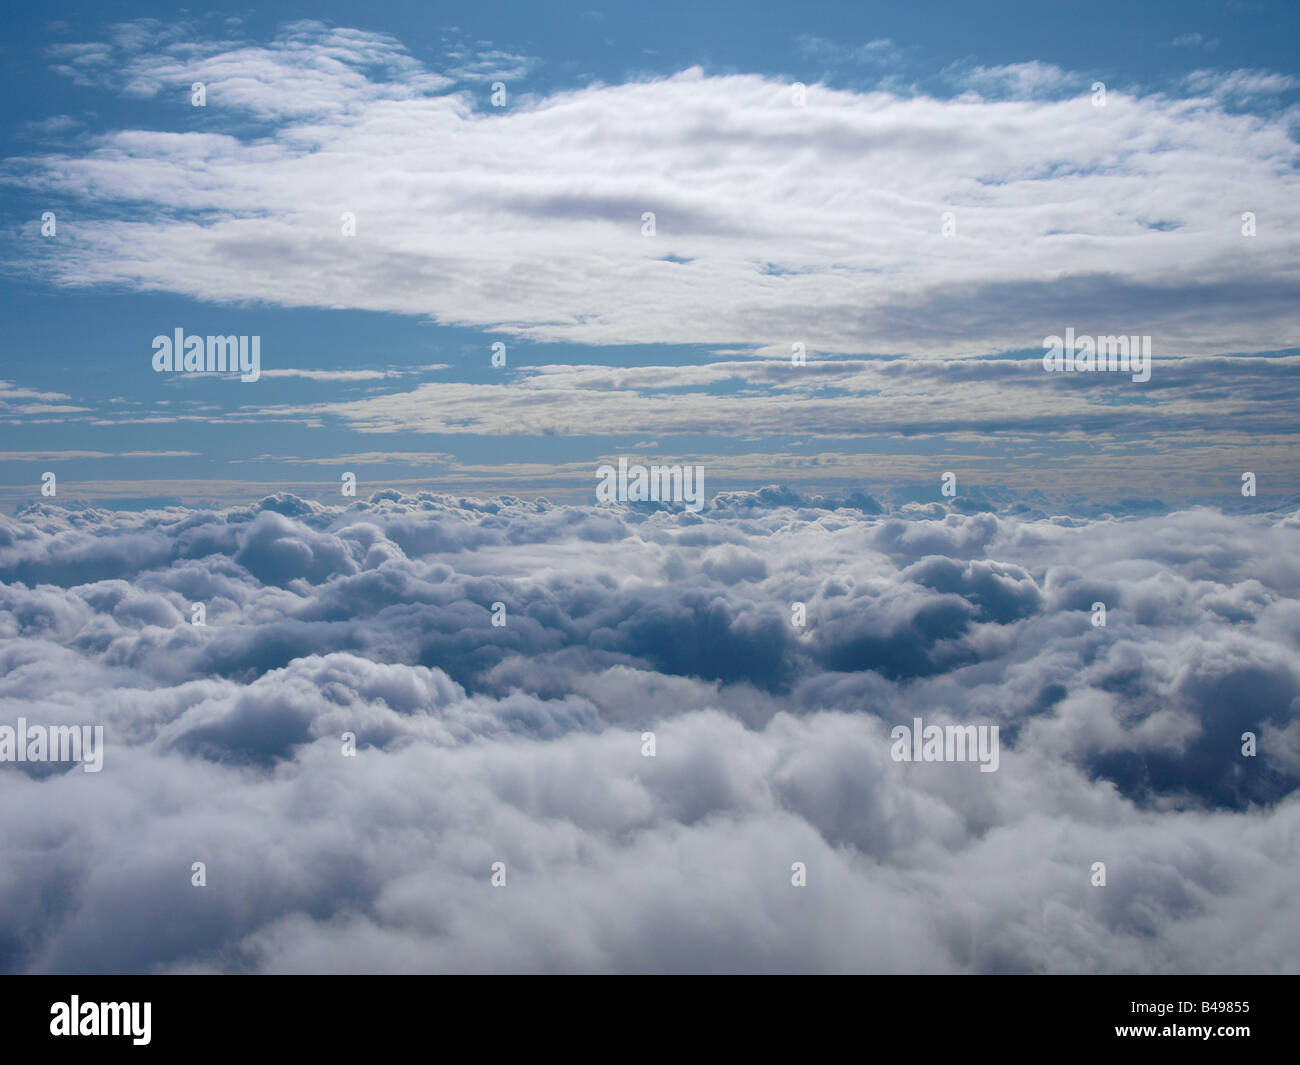 Flying above the clouds Picture taken at 19000 feet above the English Channel - Stock Image